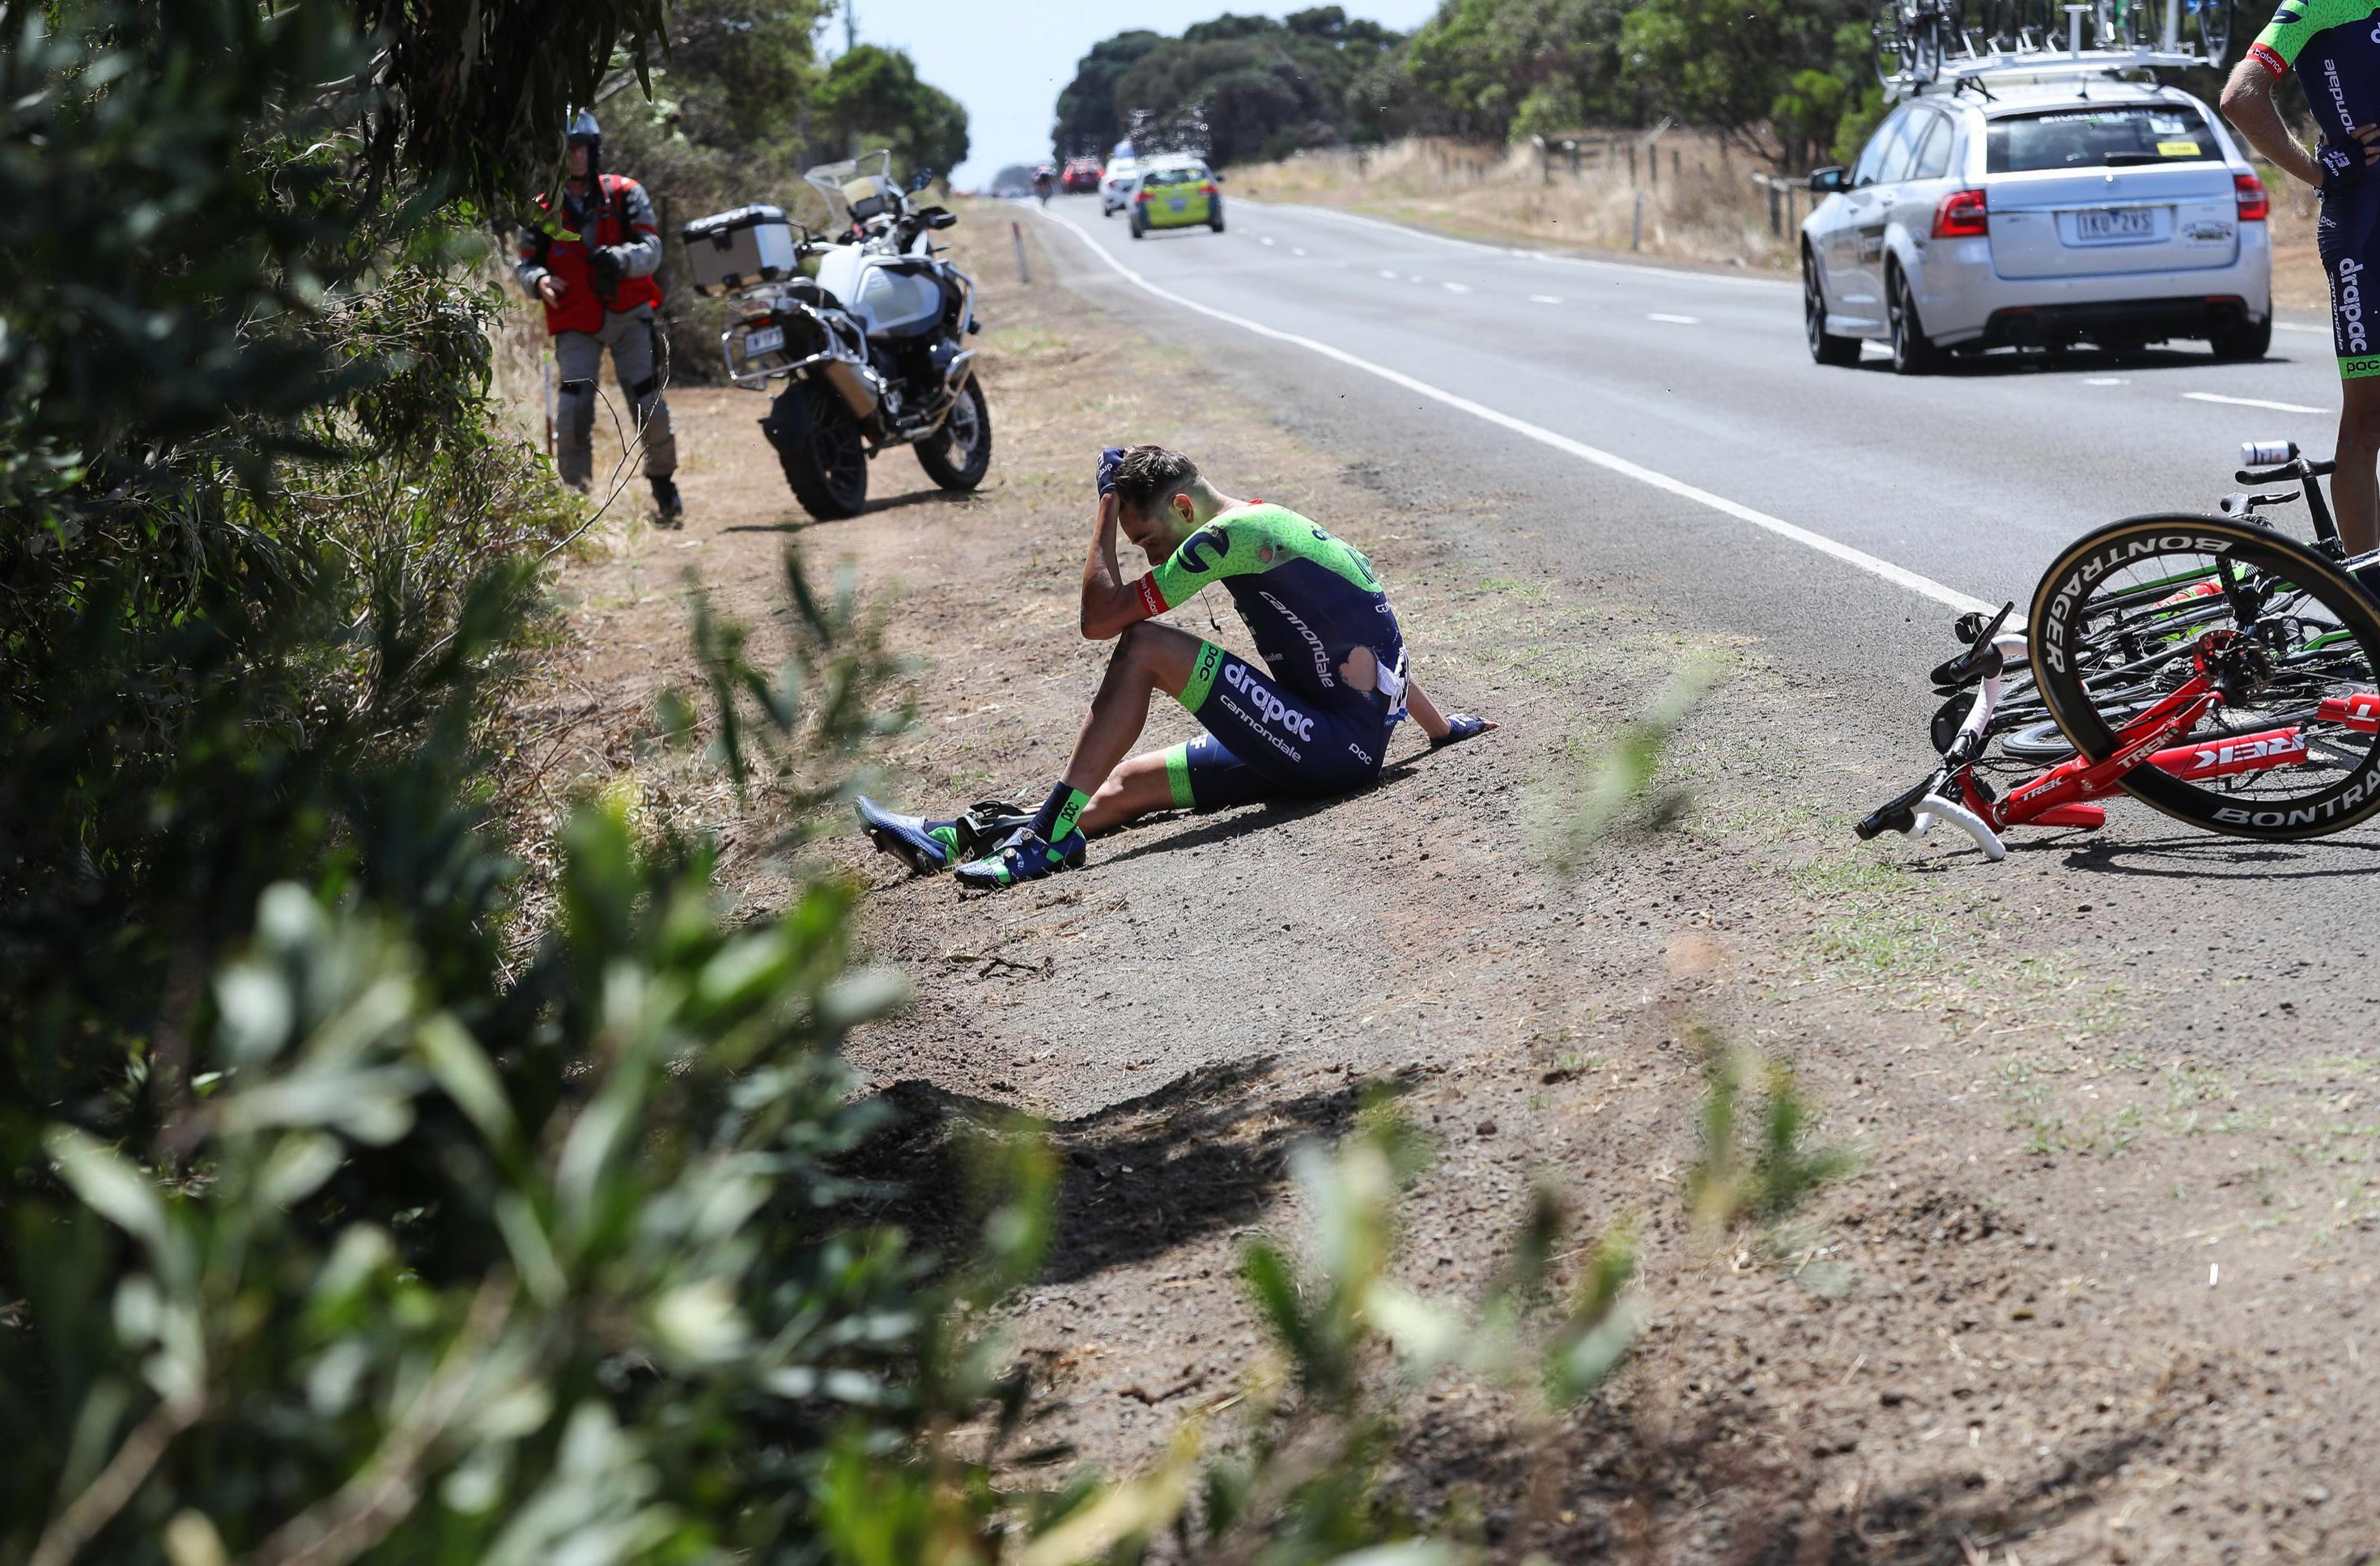 Drapac EF rider Thomas Kaesler sat down on the ground looking dazed and without a helmet after the ugly crash in Victoria